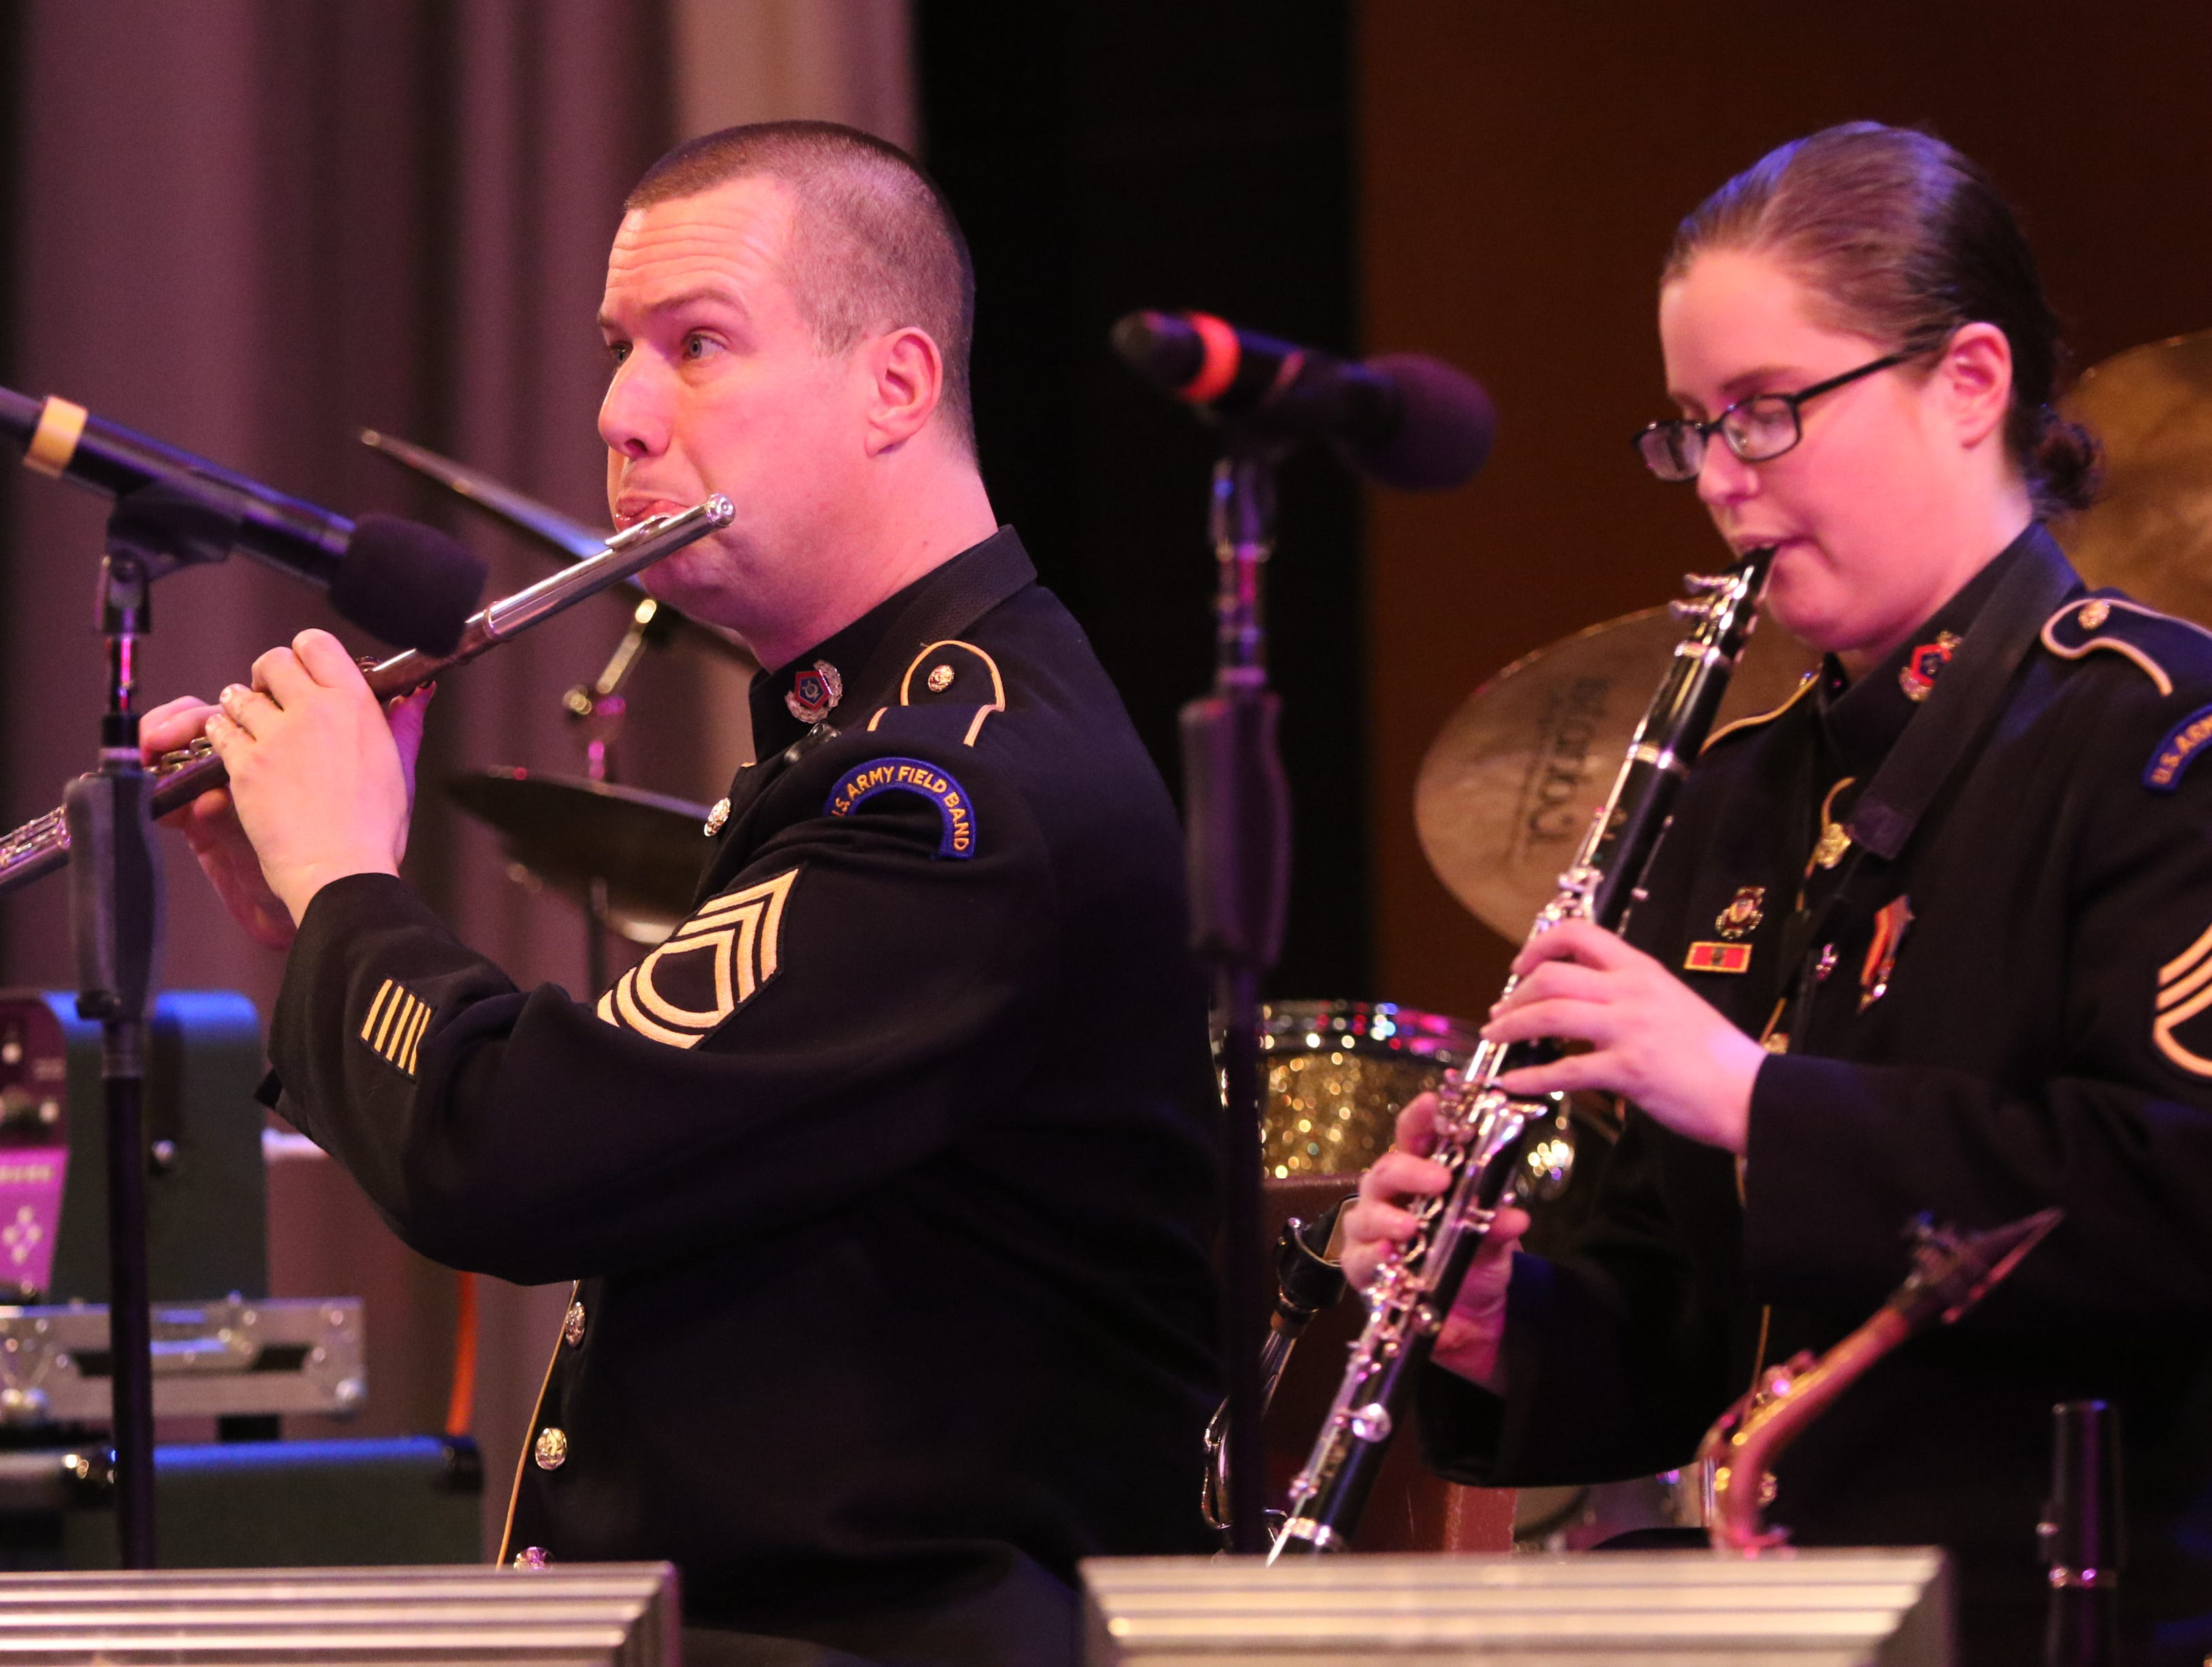 Master Sgt.Pat Shook plays the flute, in Wayne.  The United States Army  Jazz Ambassadors Field Band performed at Wayne Hills High School, Thursday, March 21, 2019.  This was the eleventh day of their tour, which lasts more than a month.